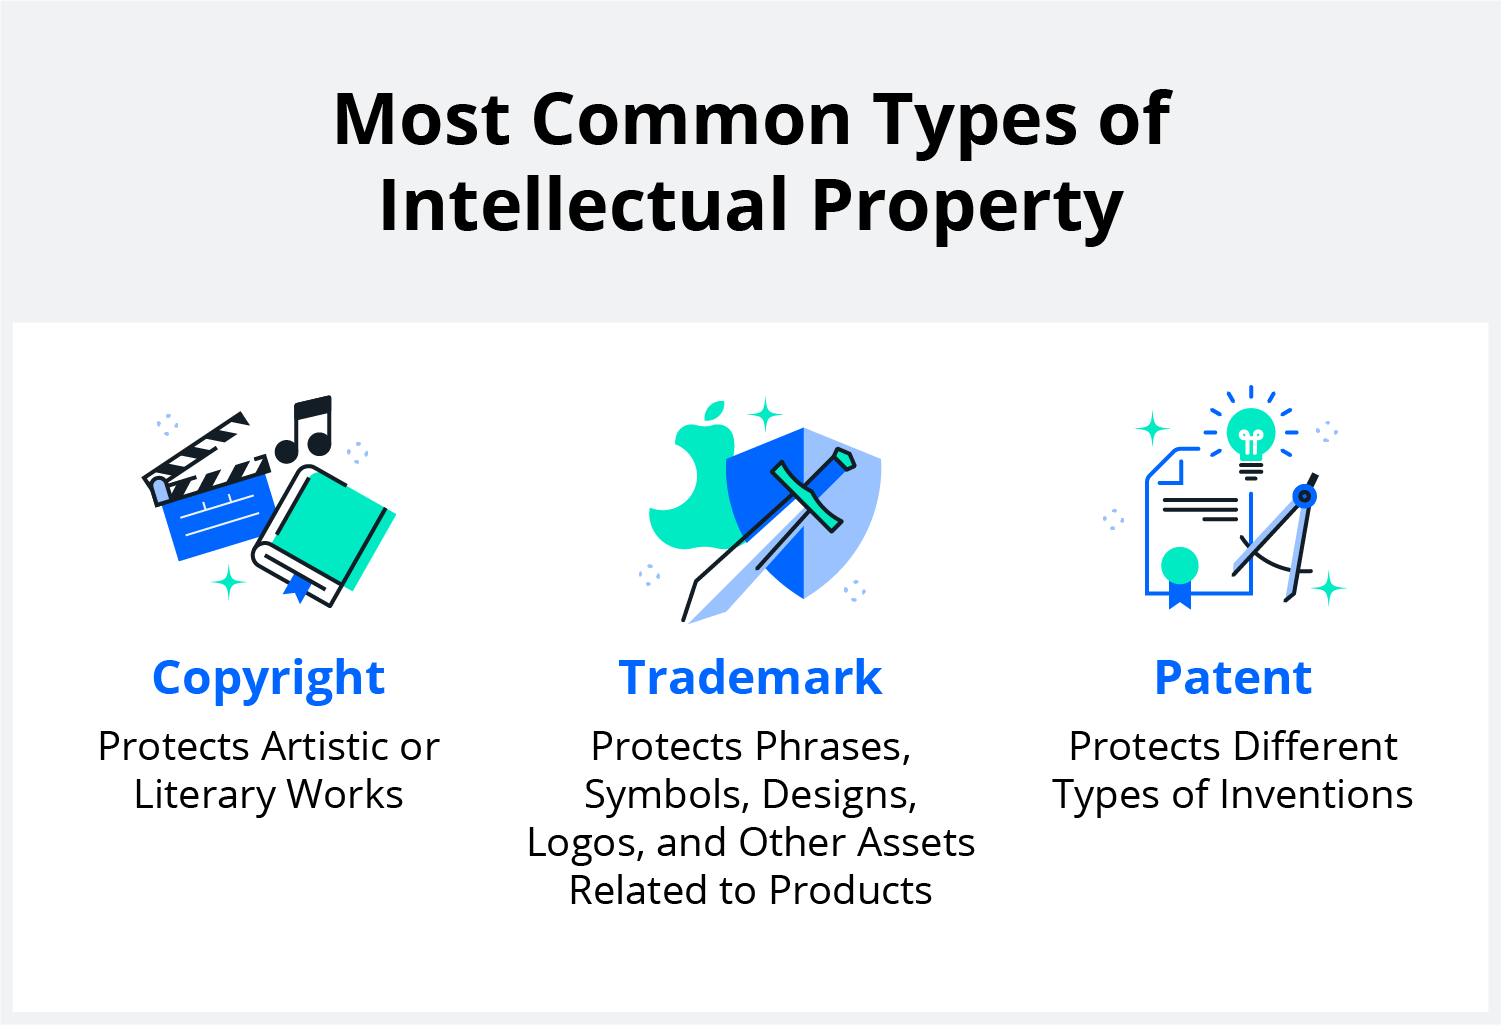 Common Types of Intellectual Property